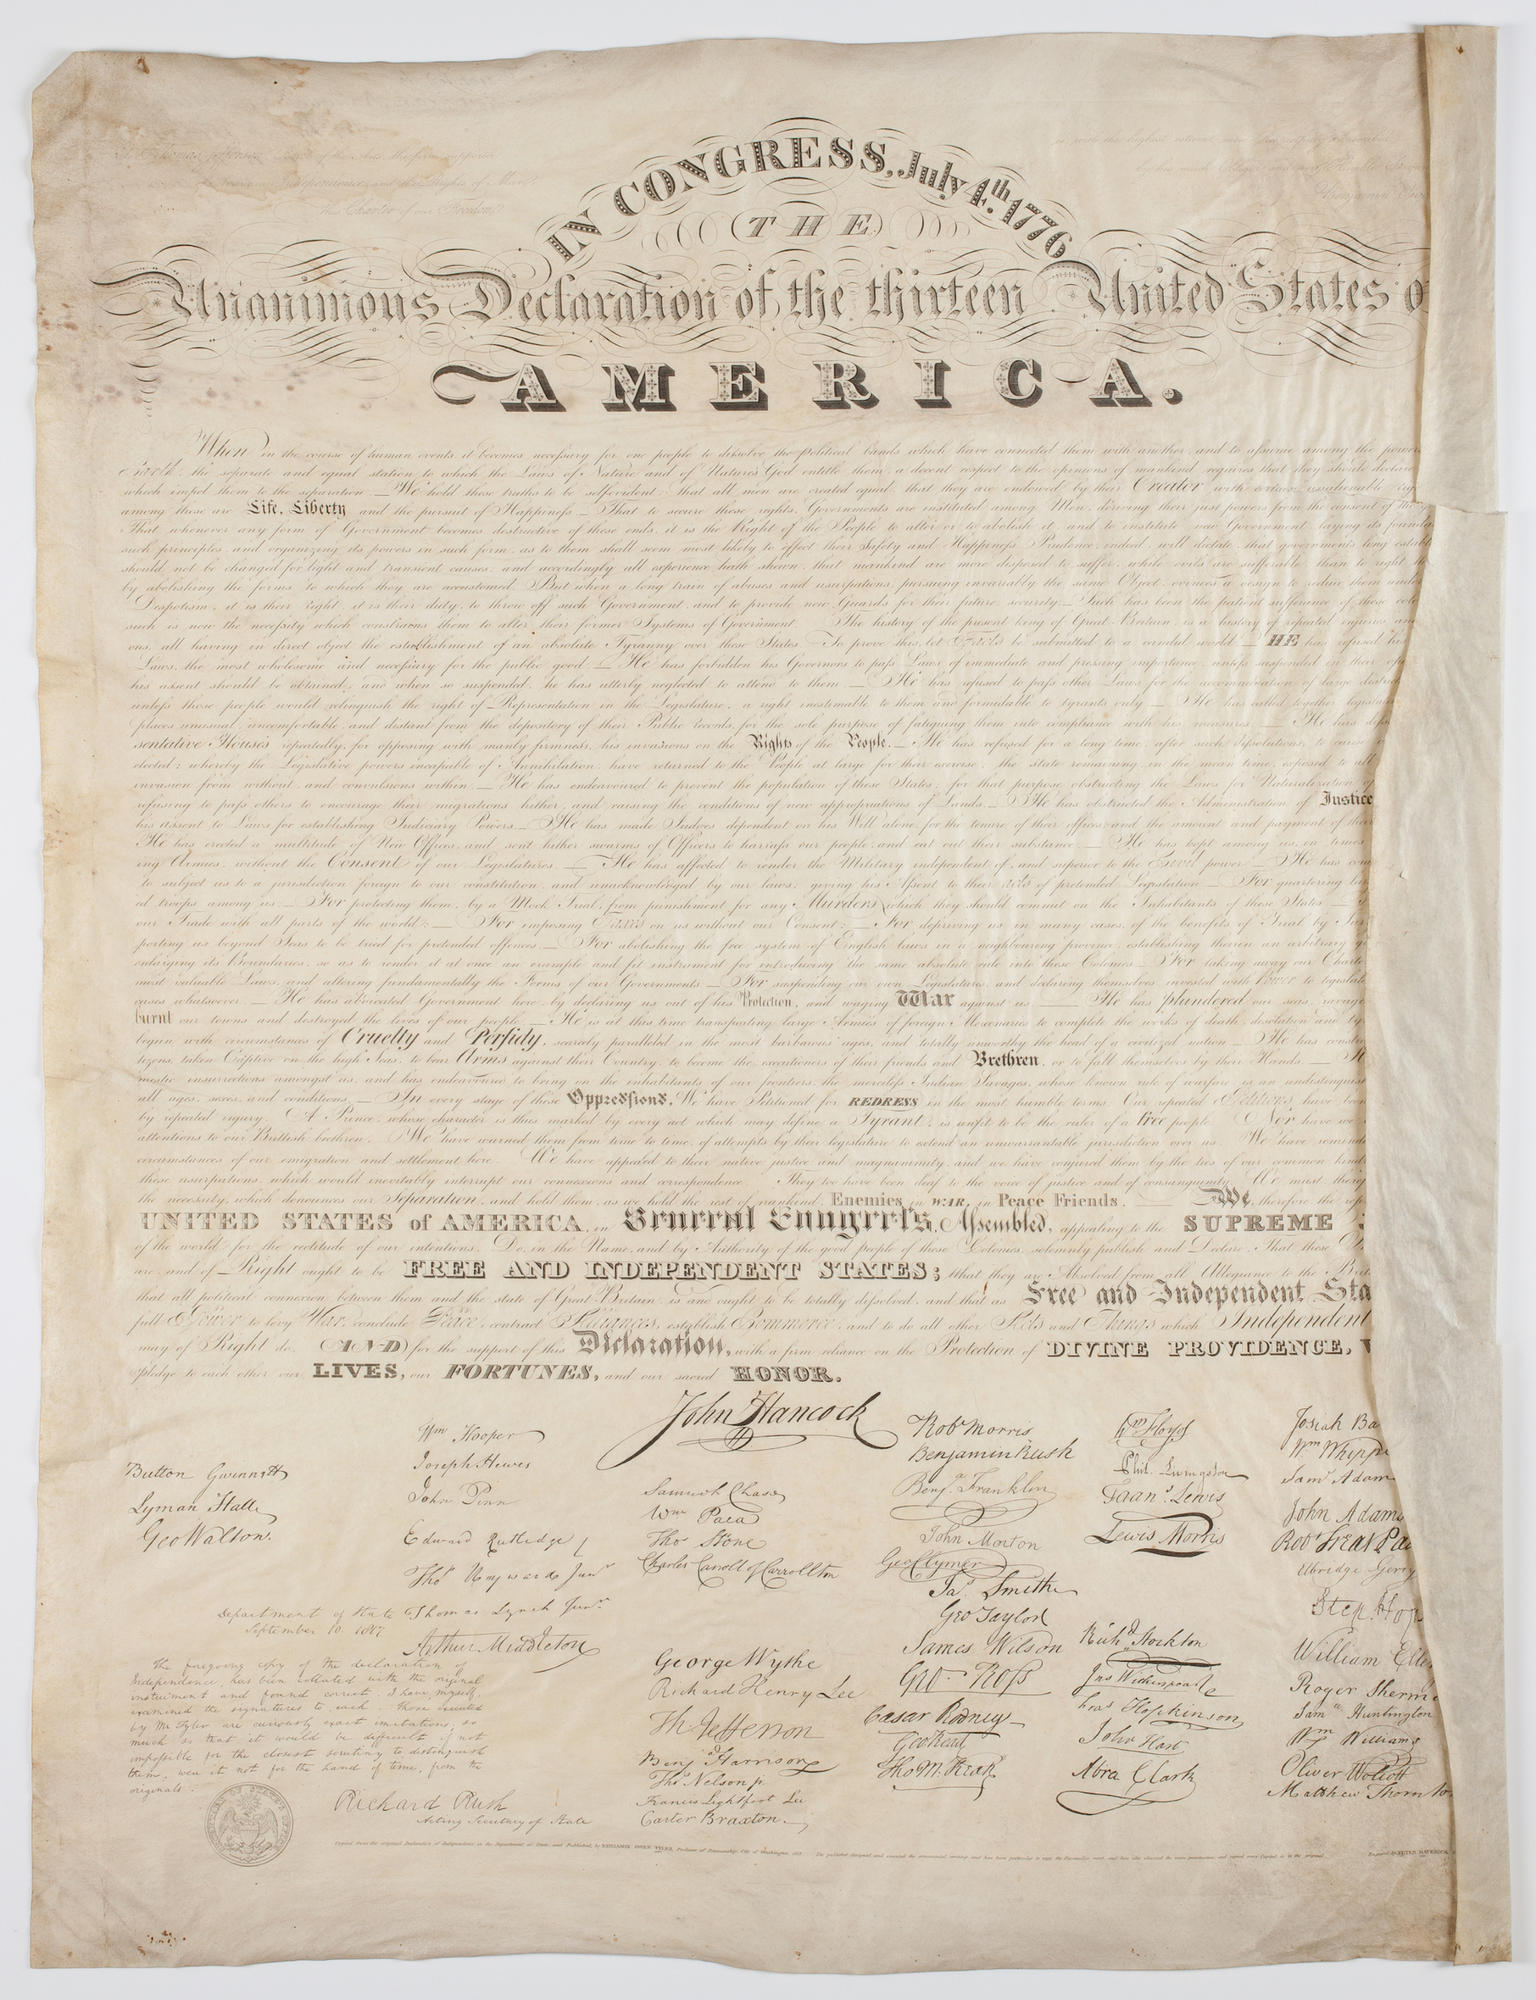 Benjamin Owen Tyler, Facsimile Engraving of the Declaration of Independence, 1818